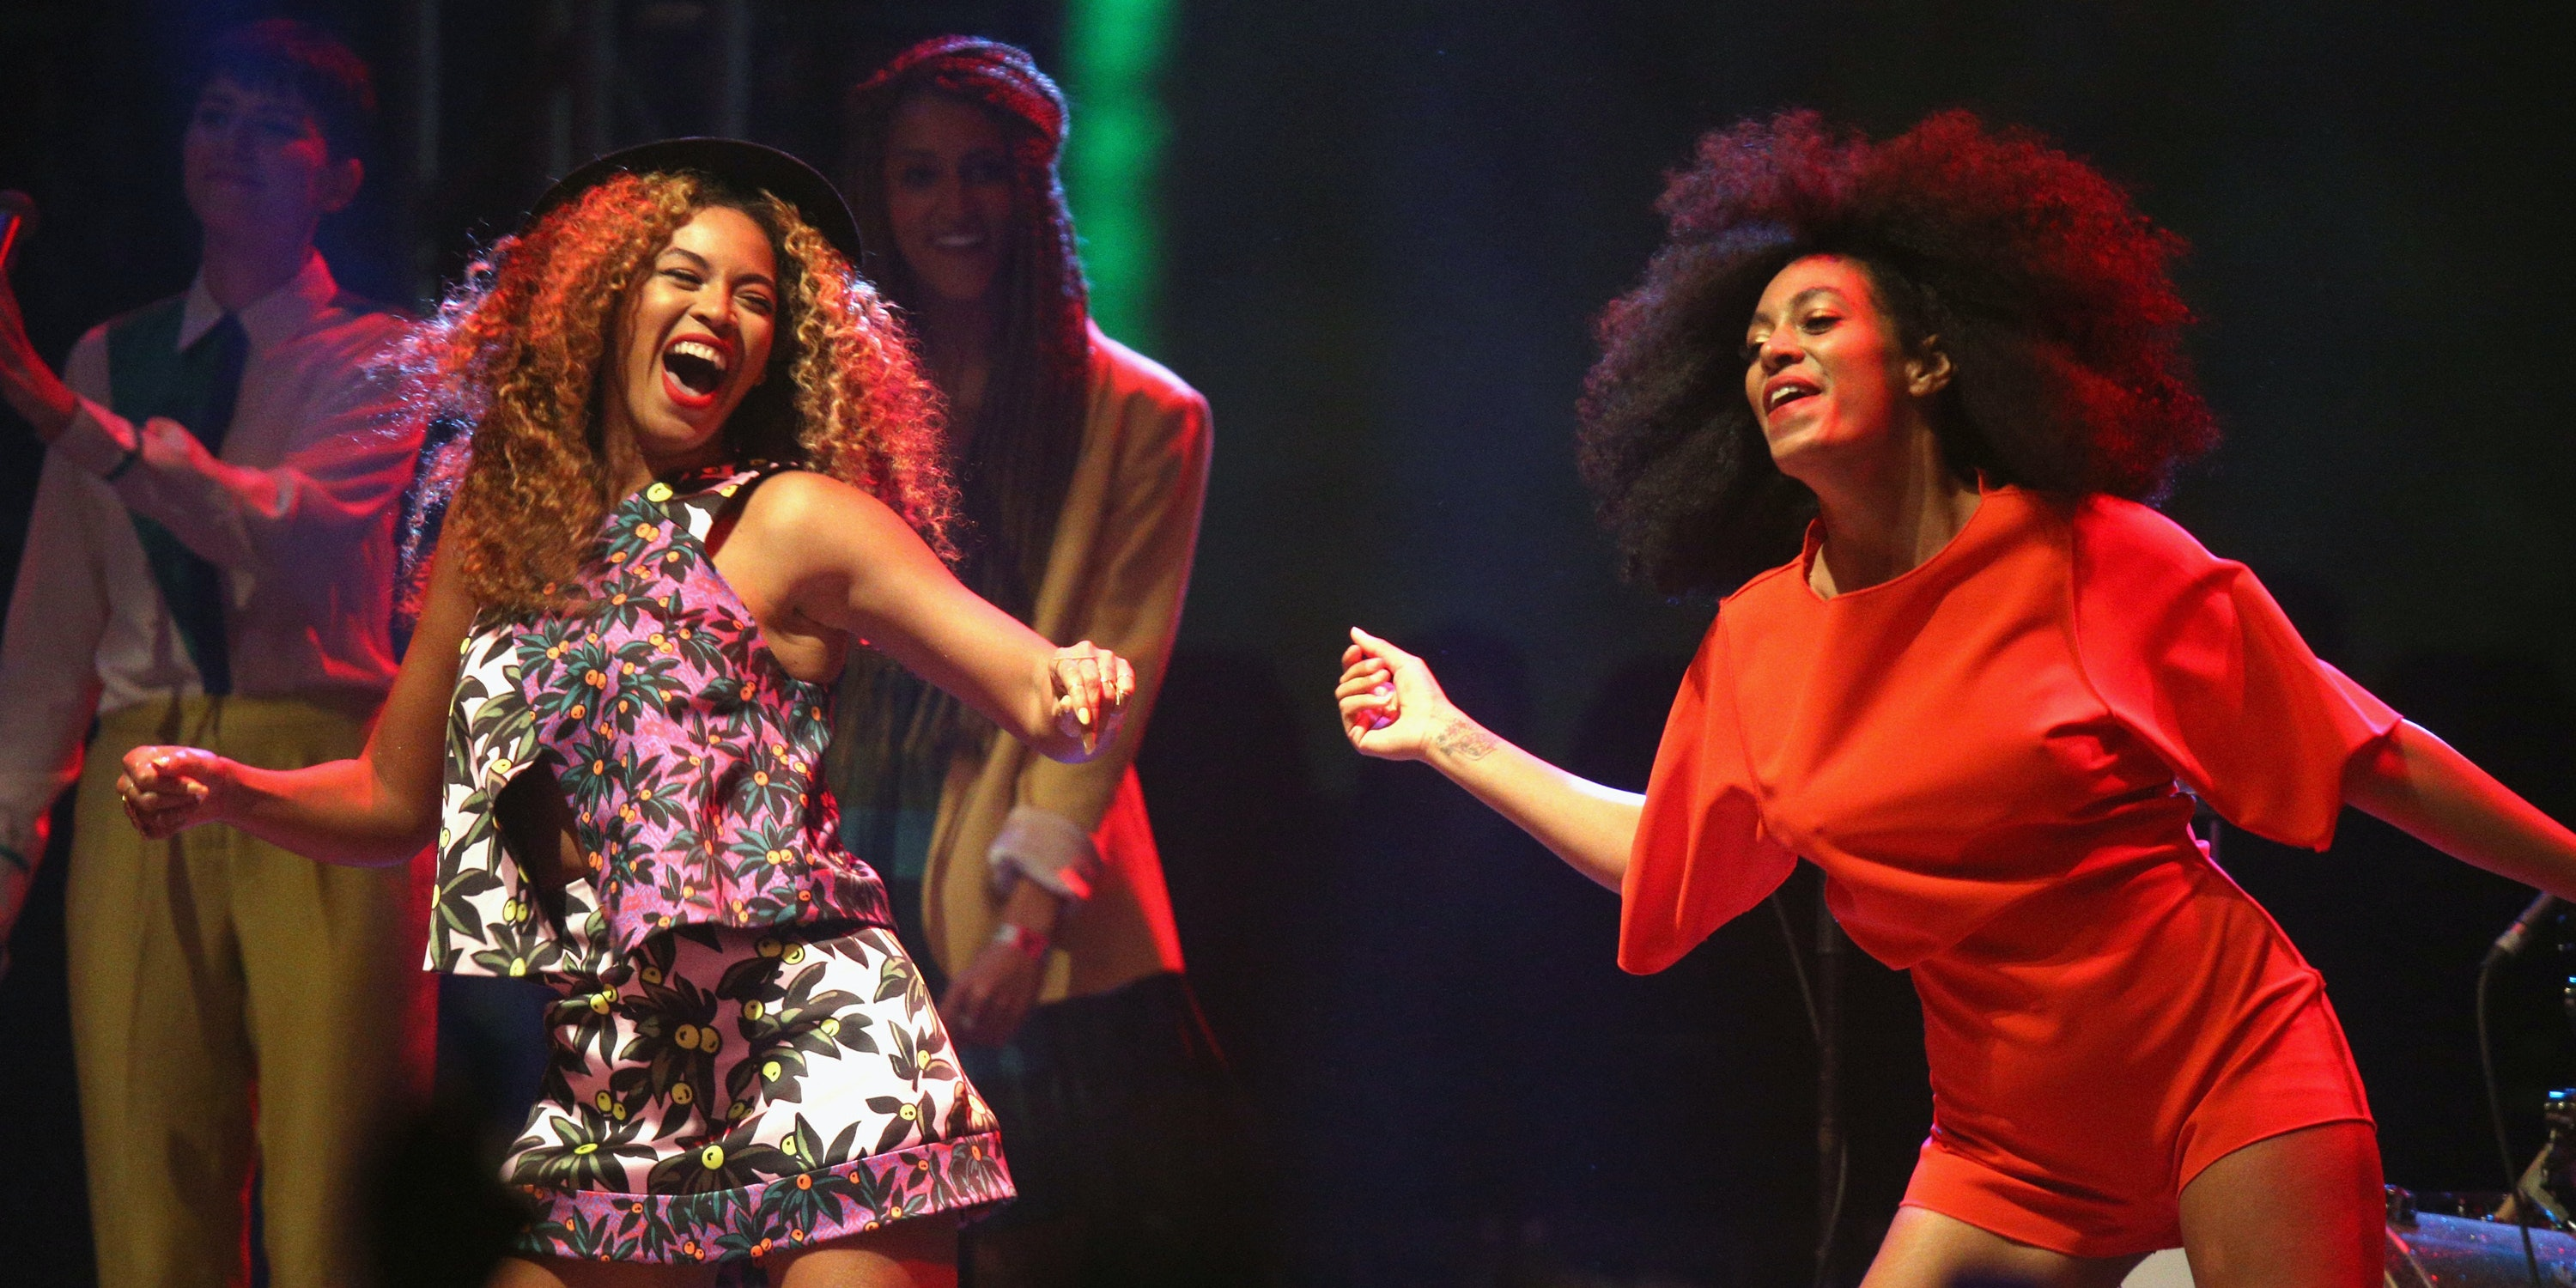 Beyonce and Solange Knowles at the 2014 Coachella Festival.